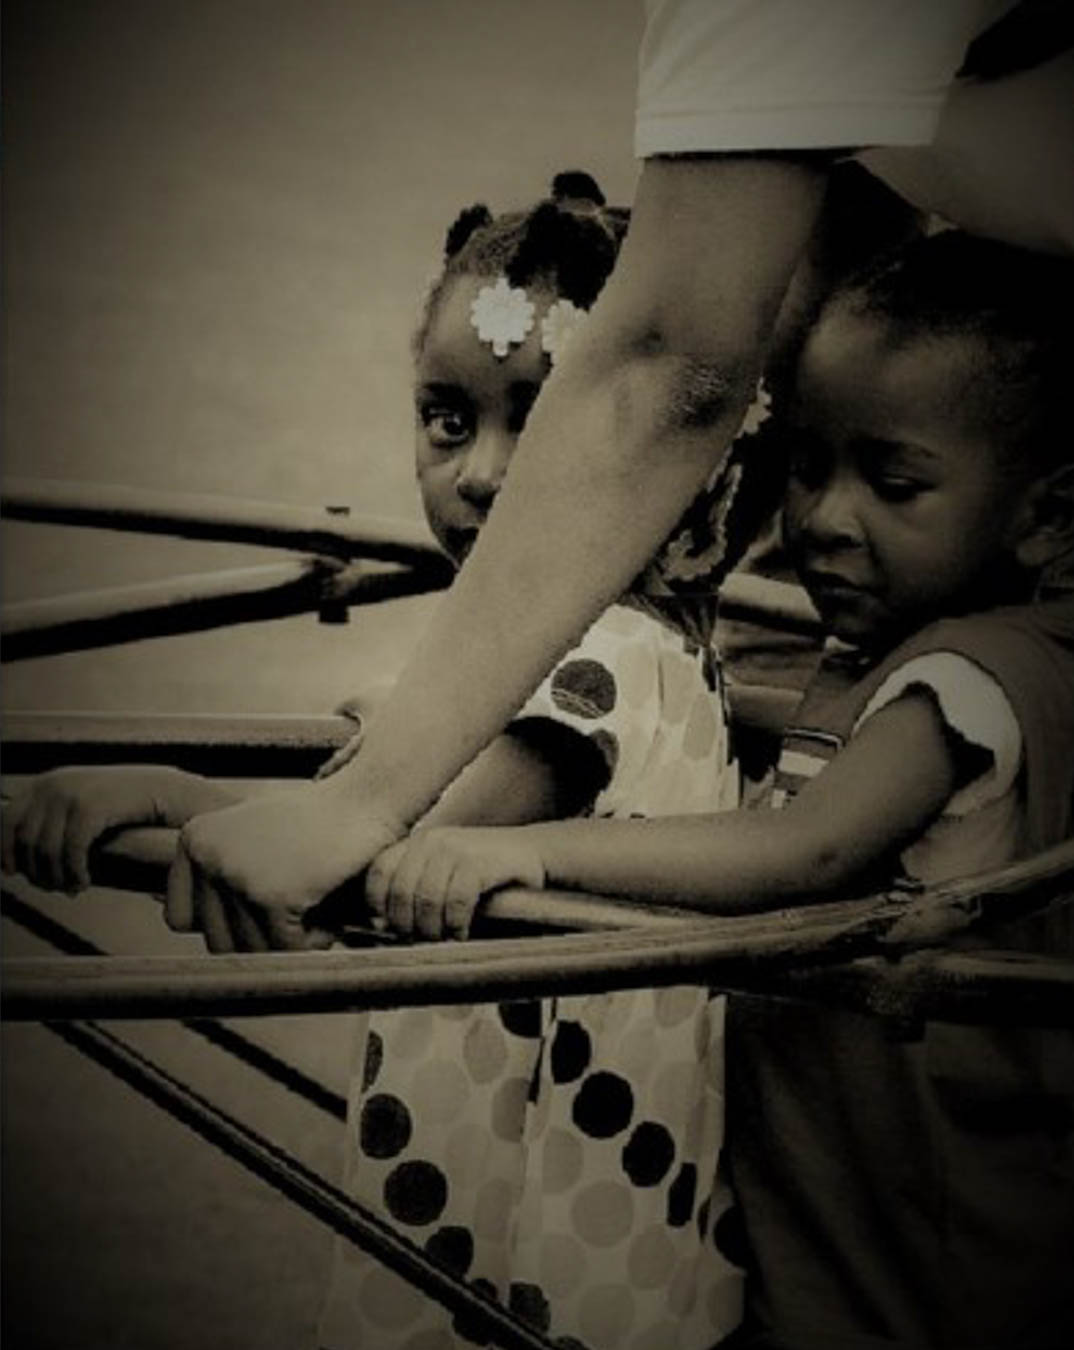 Black and white image of two children on playground equipment surrounded by adult arms.